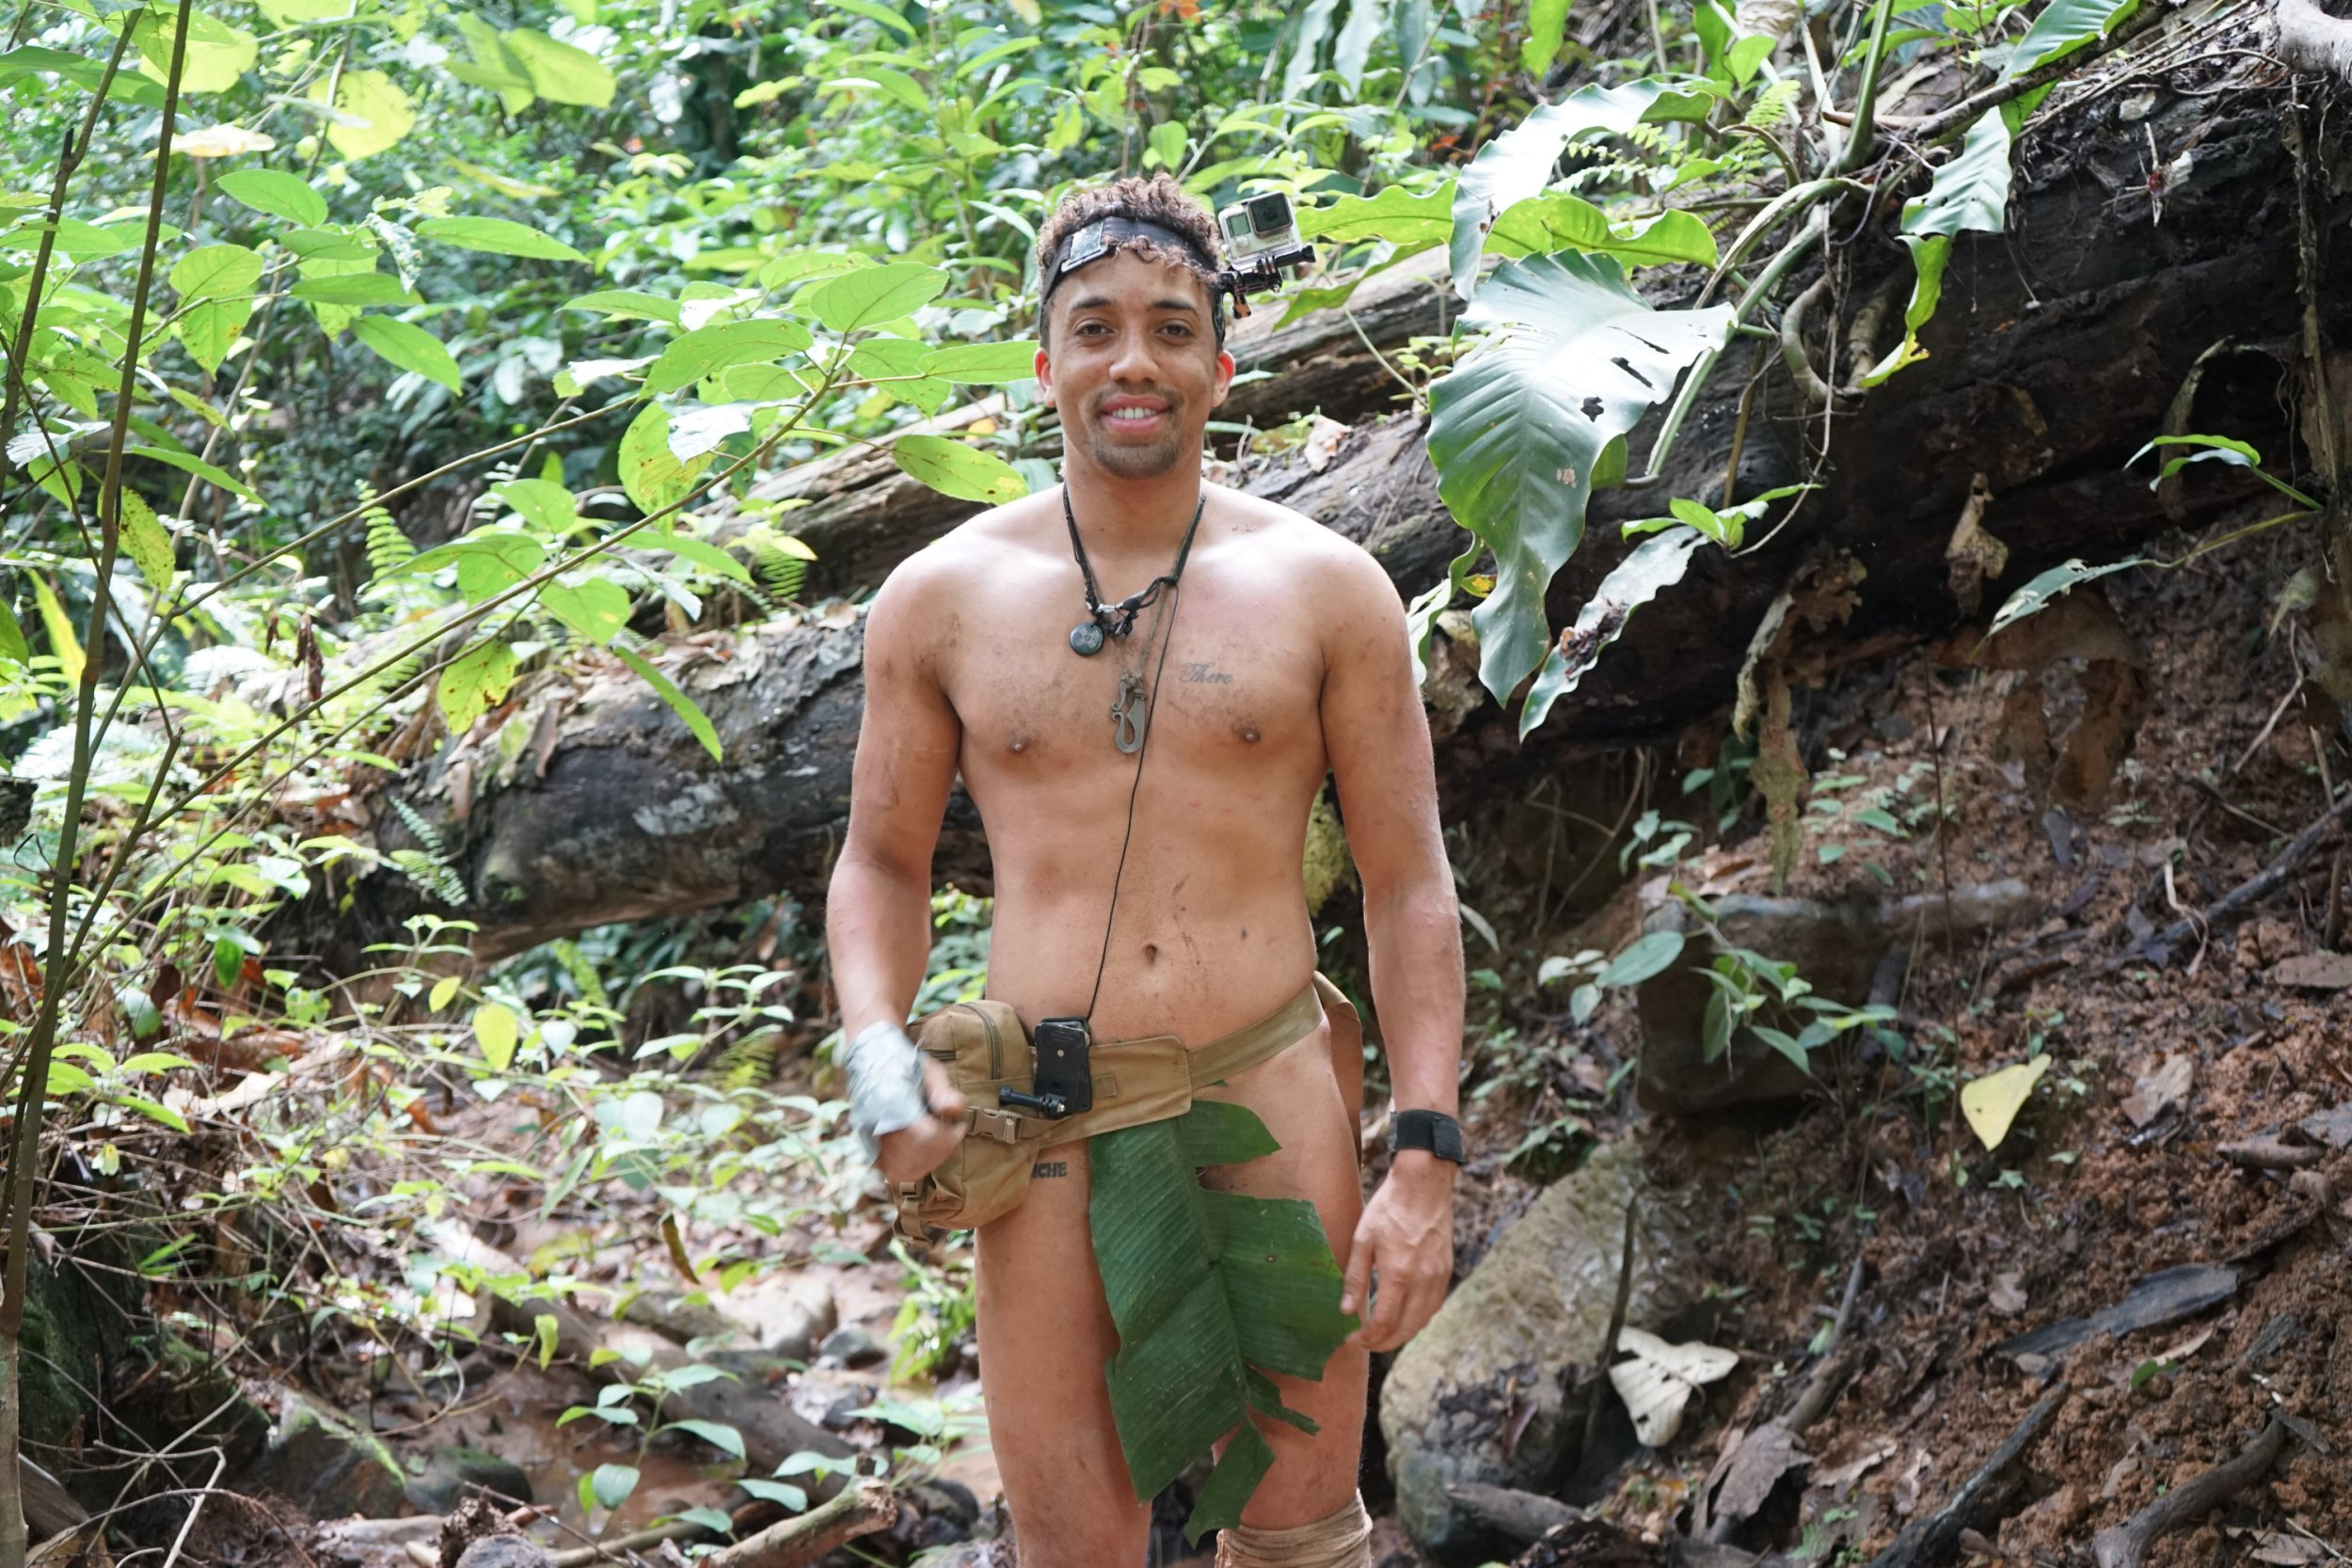 "Adventurer Daniel Olifi, 26 during his adventure. See SWNS story SWTPnaked; A pair of uni pals battled blistering heat, machete wounds, thunderstorms and hypothermia to survive three weeks in the jungle -- totally NAKED. Adventurer Daniel Olifi, 26, and his mate James Moynihan, 27, love going on unusual holidays, and wanted to see if they could survive three weeks alone in rural Malaysia. The survival junkies only took a flint rock, a machete, a mosquito net, a metal water pot and a first aid kit on their trip. Financial tech worker Daniel and cruise entertainer James endured thunderstorms, dozens of mosquito bites, hypothermia, dehydration, and pitch black sleepless nights. They lost 46 lbs between them, thanks to a diet of foraged plants and bugs. They managed three weeks close to the equator - apart from one short trip to a hospital so Daniel could get stitches after slicing his hand open with a machete. The hardy duo said they decided not to wear clothes for the adventure ""to show that it can be done"" and recorded their time in video diaries."